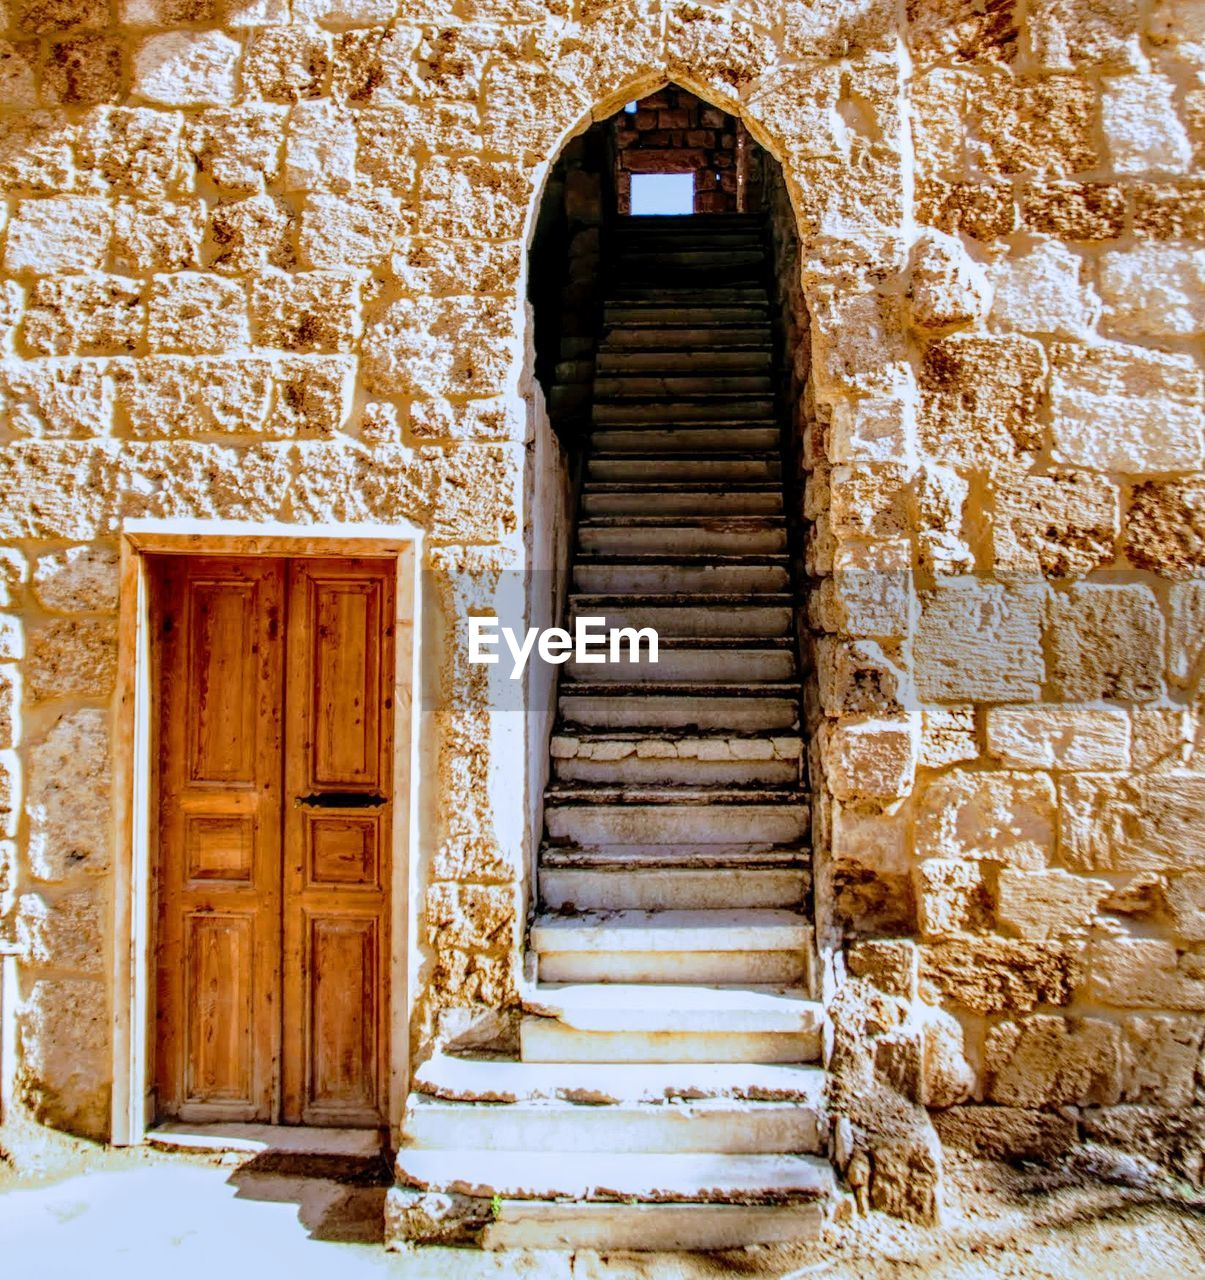 door, entrance, architecture, built structure, steps, doorway, building exterior, steps and staircases, no people, day, open door, entry, outdoors